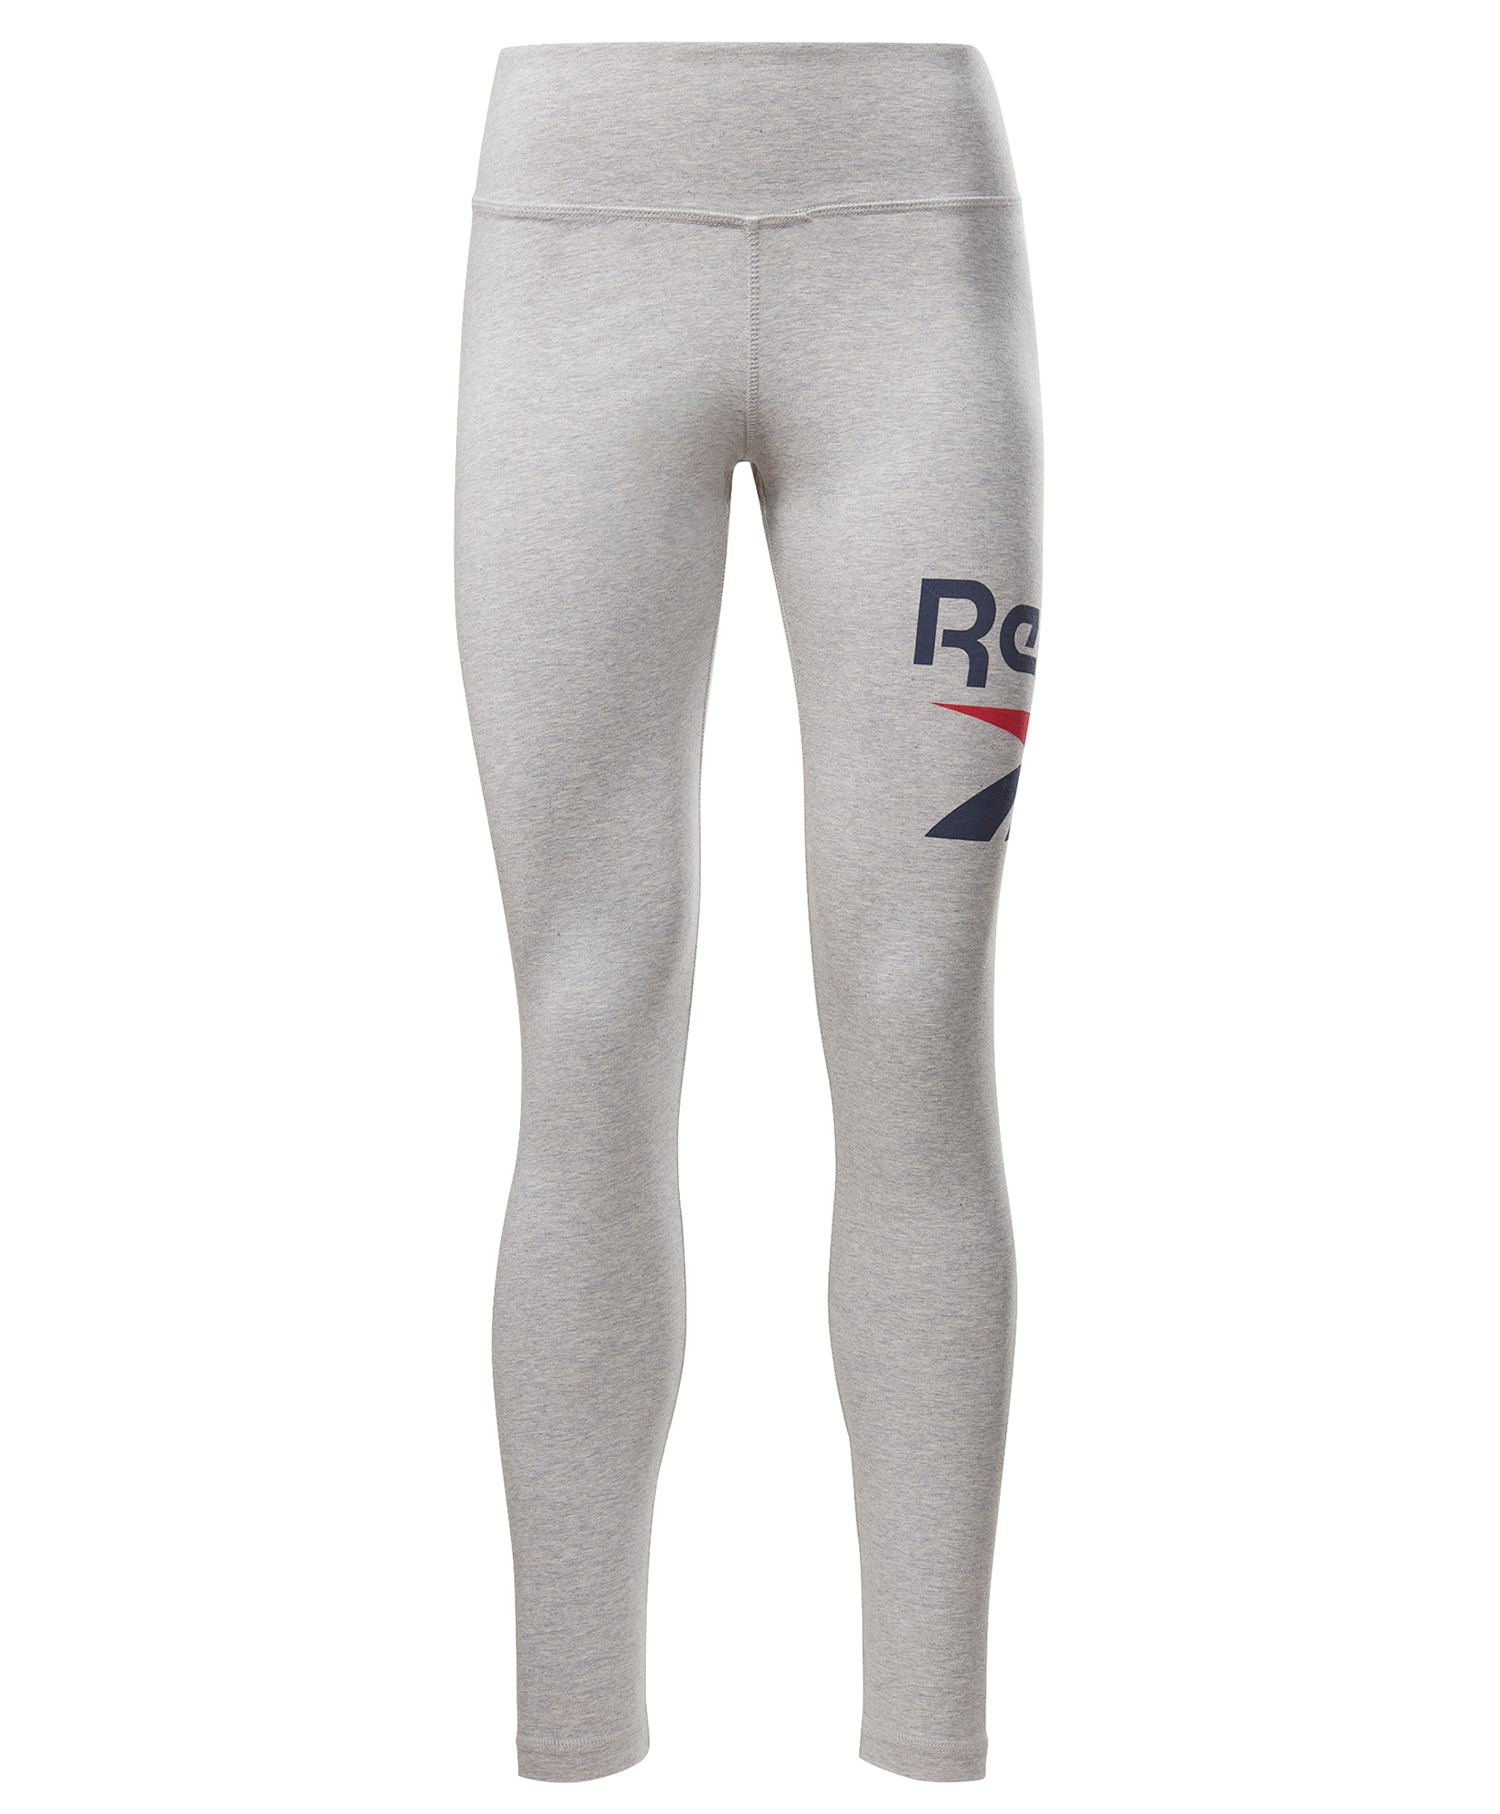 Reebok Cotton Tights